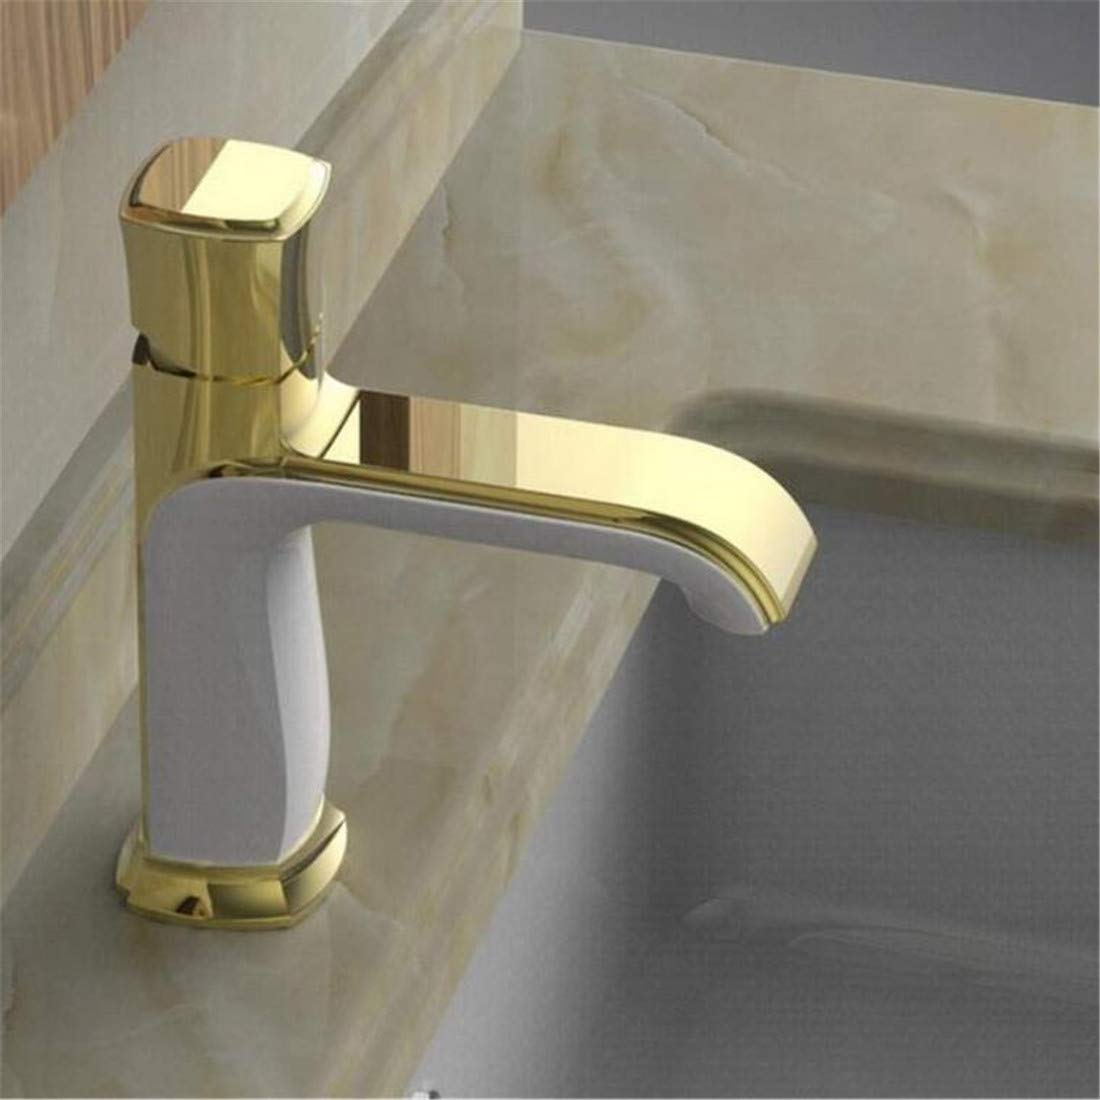 Modern simple copper hot and cold kitchen sink taps kitchen faucet Copper hot and cold waterfall faucet water power LED basin faucet Suitable for all bathroom kitchen sinks Janitorial & Sanitation Supplies